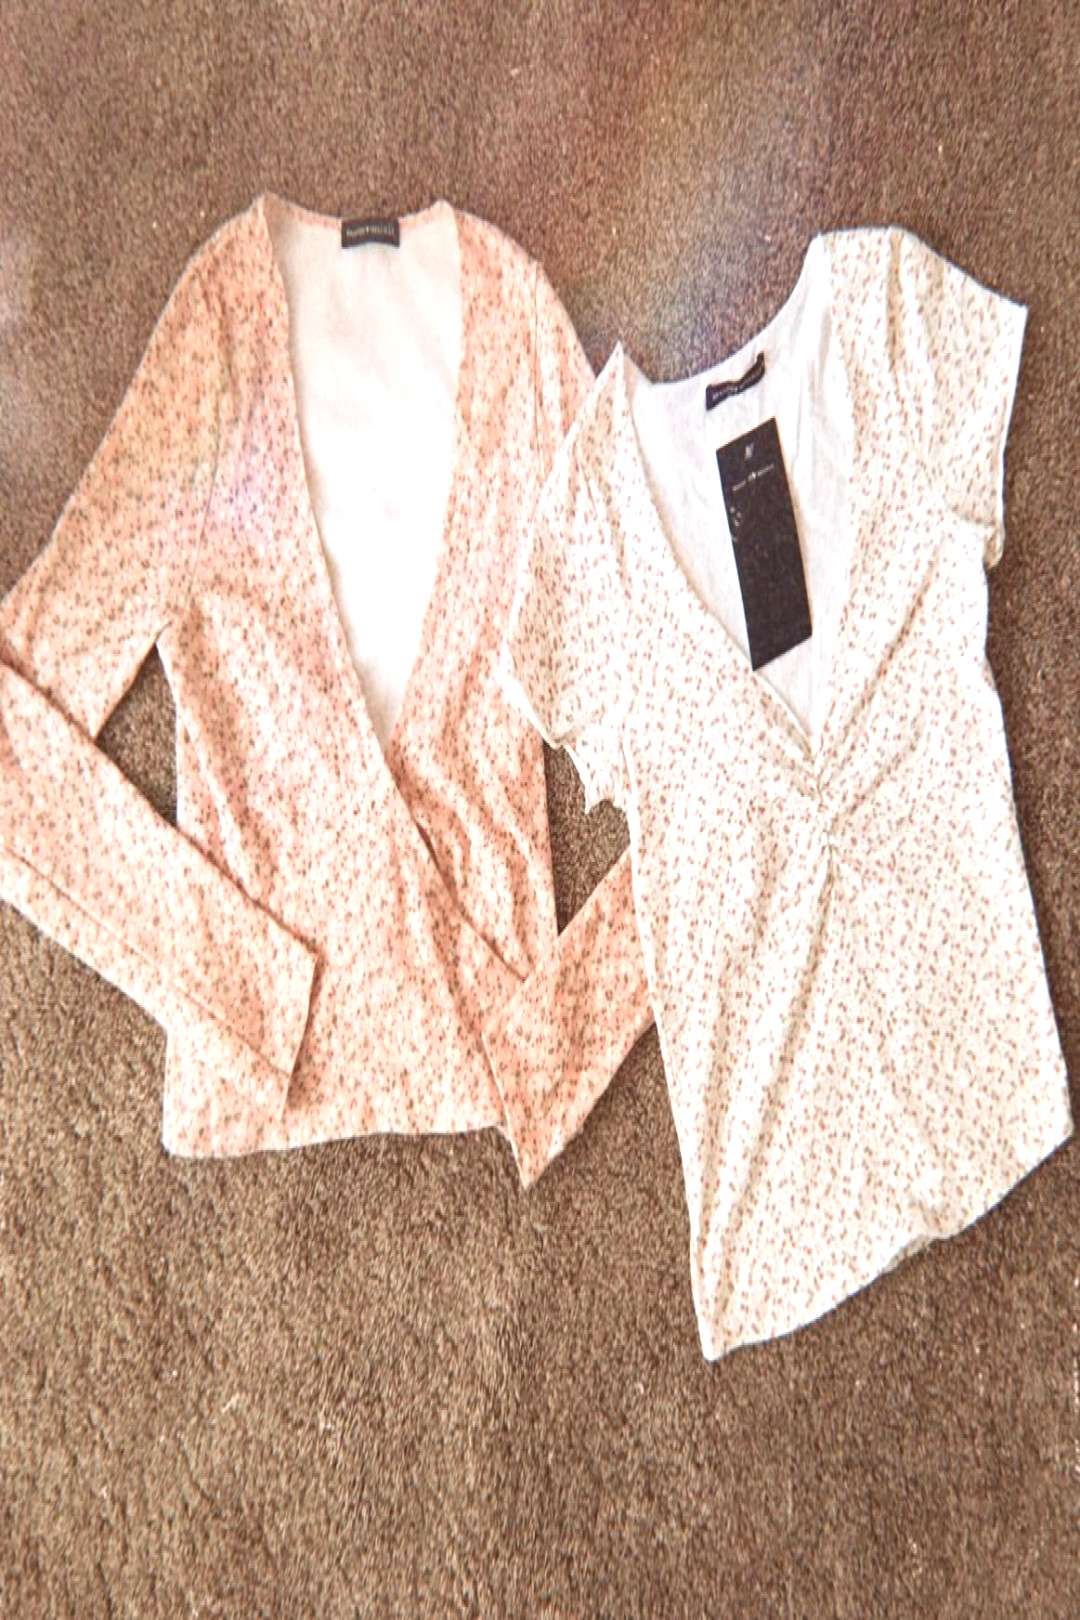 brandy melville tops ~ gina amp coco floral pink floral tie front coco top and white floral gina top